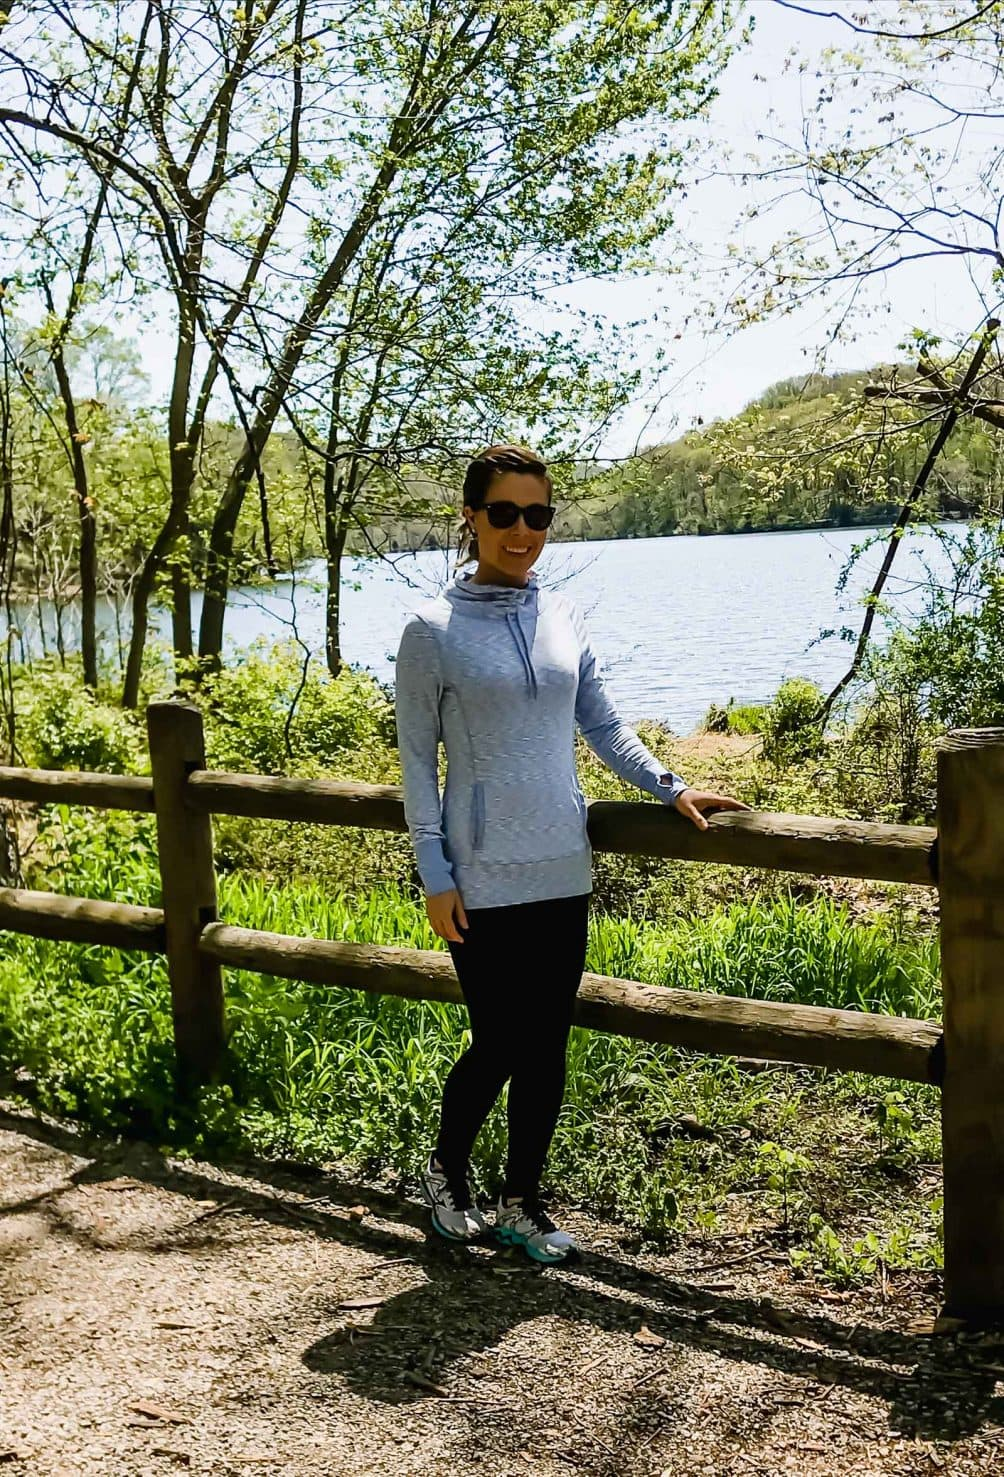 A young woman standing in front of a wooden fence with a lake background on a sunny day.